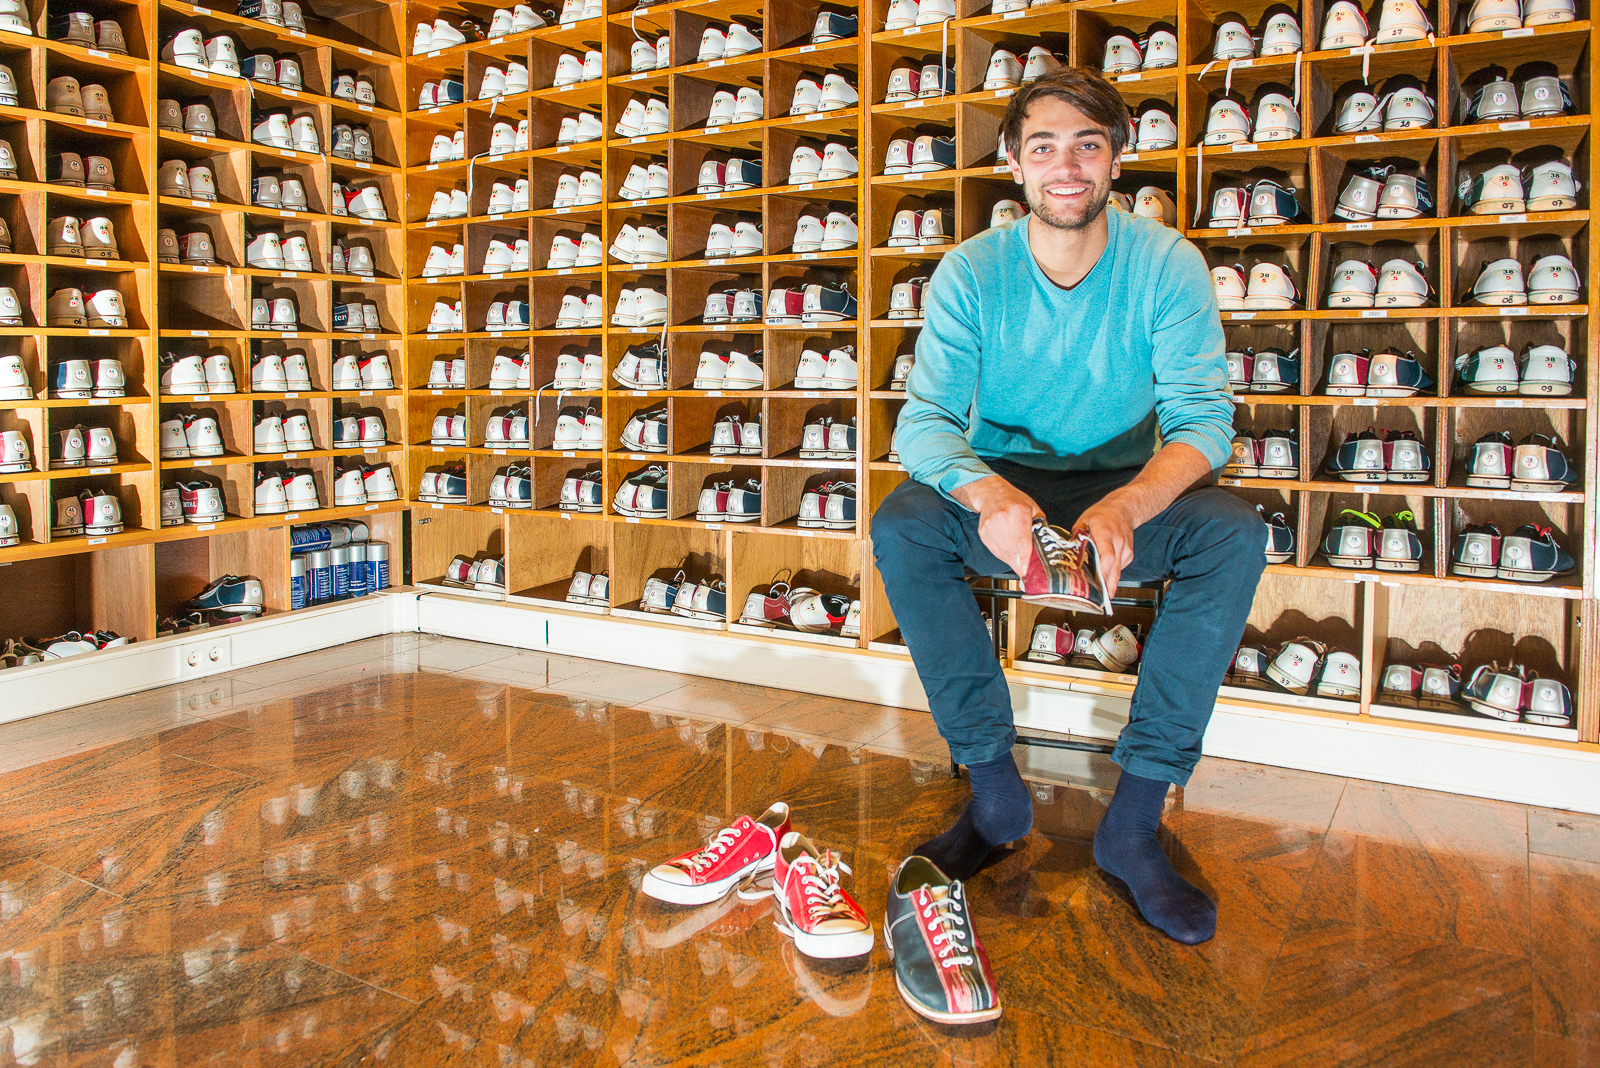 Man, sitting on a stool, surrounded by wooden shelves with various sizes of bowling shoes, trying on the sports wear, ready to go bowling